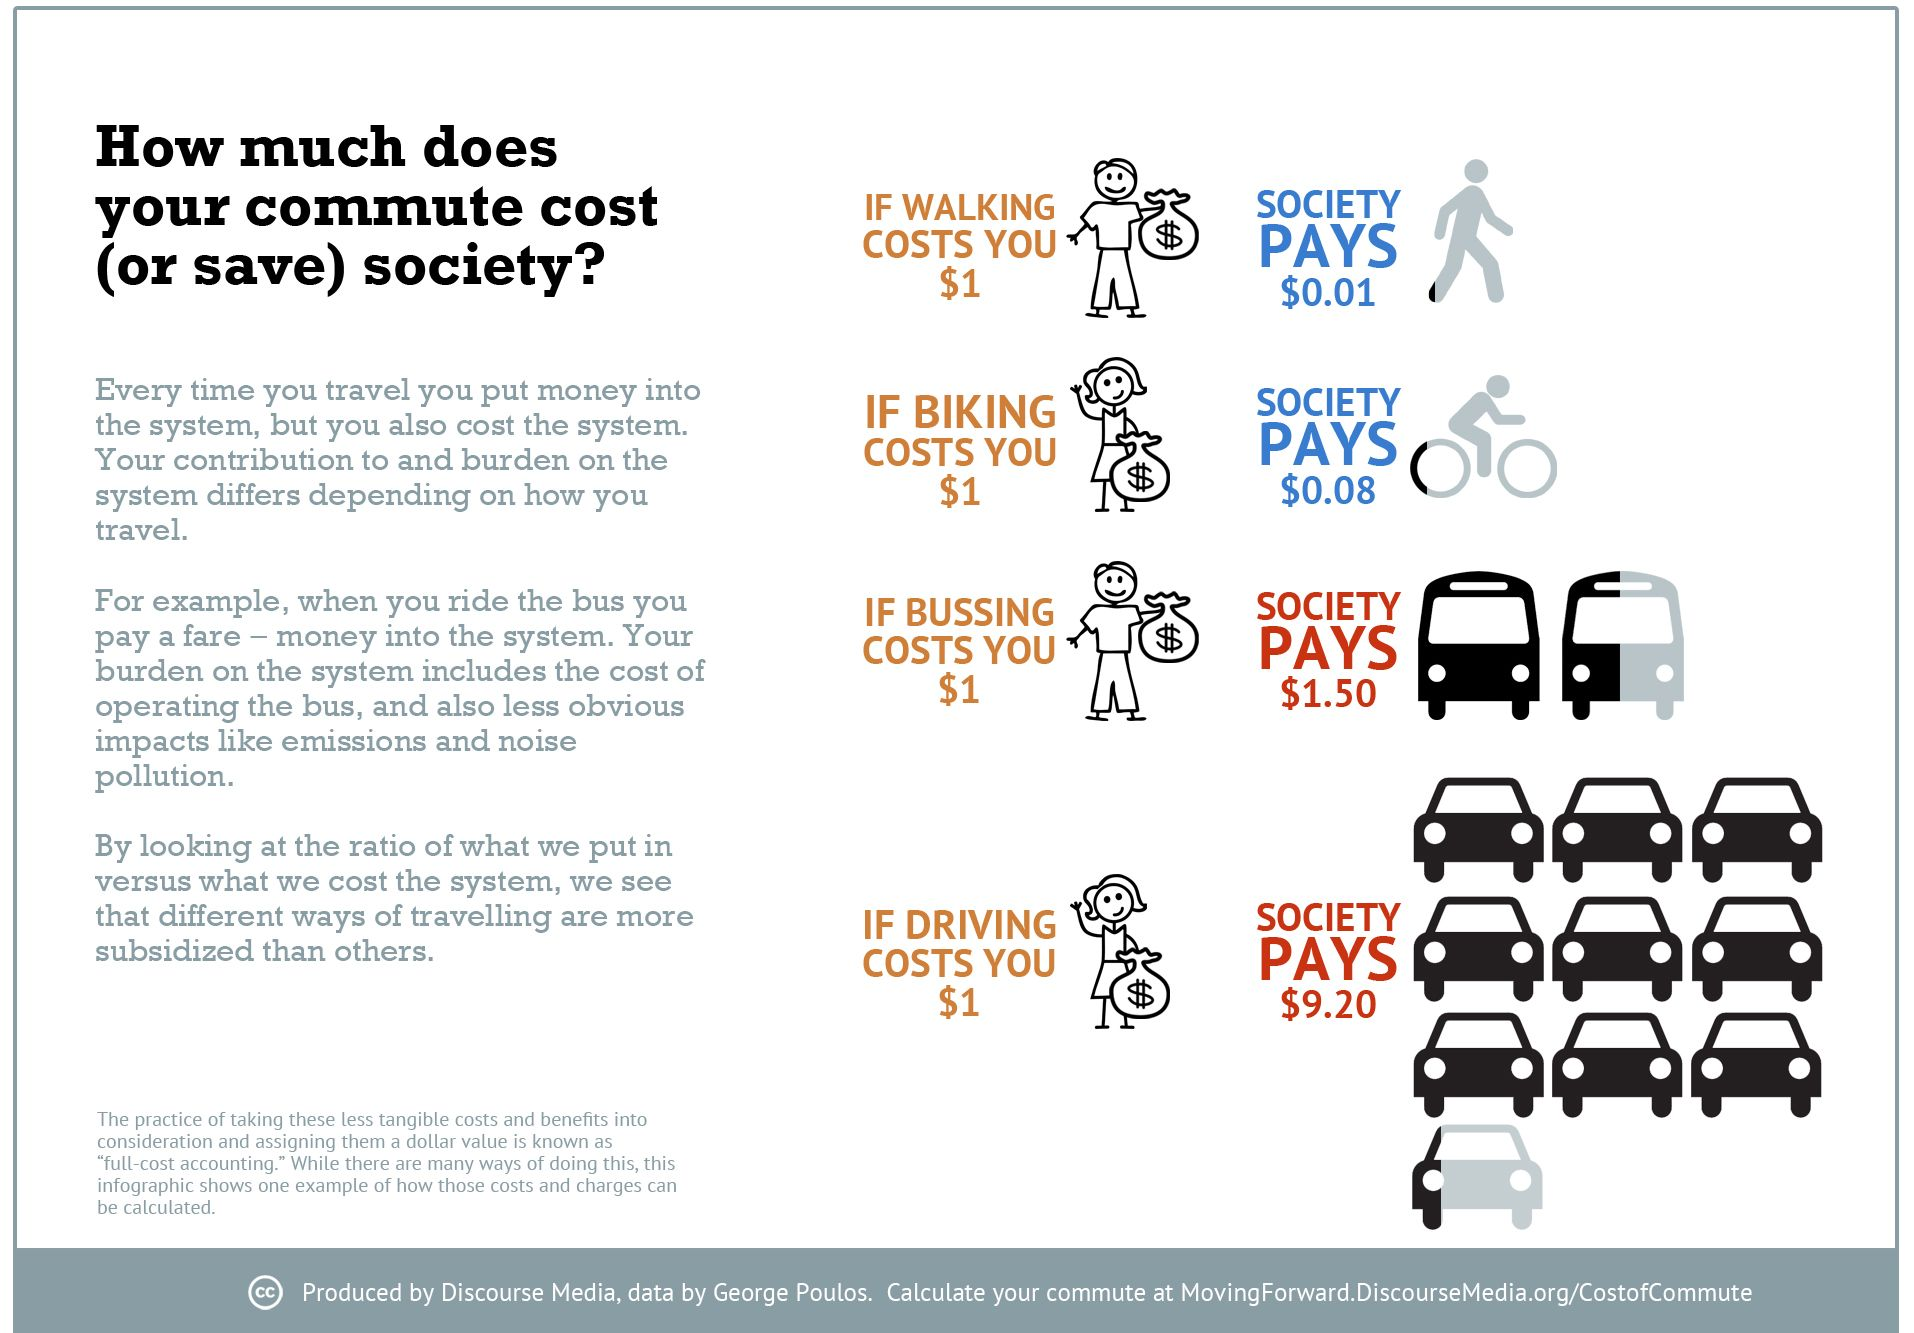 How Much Does Your Commute Cost Society